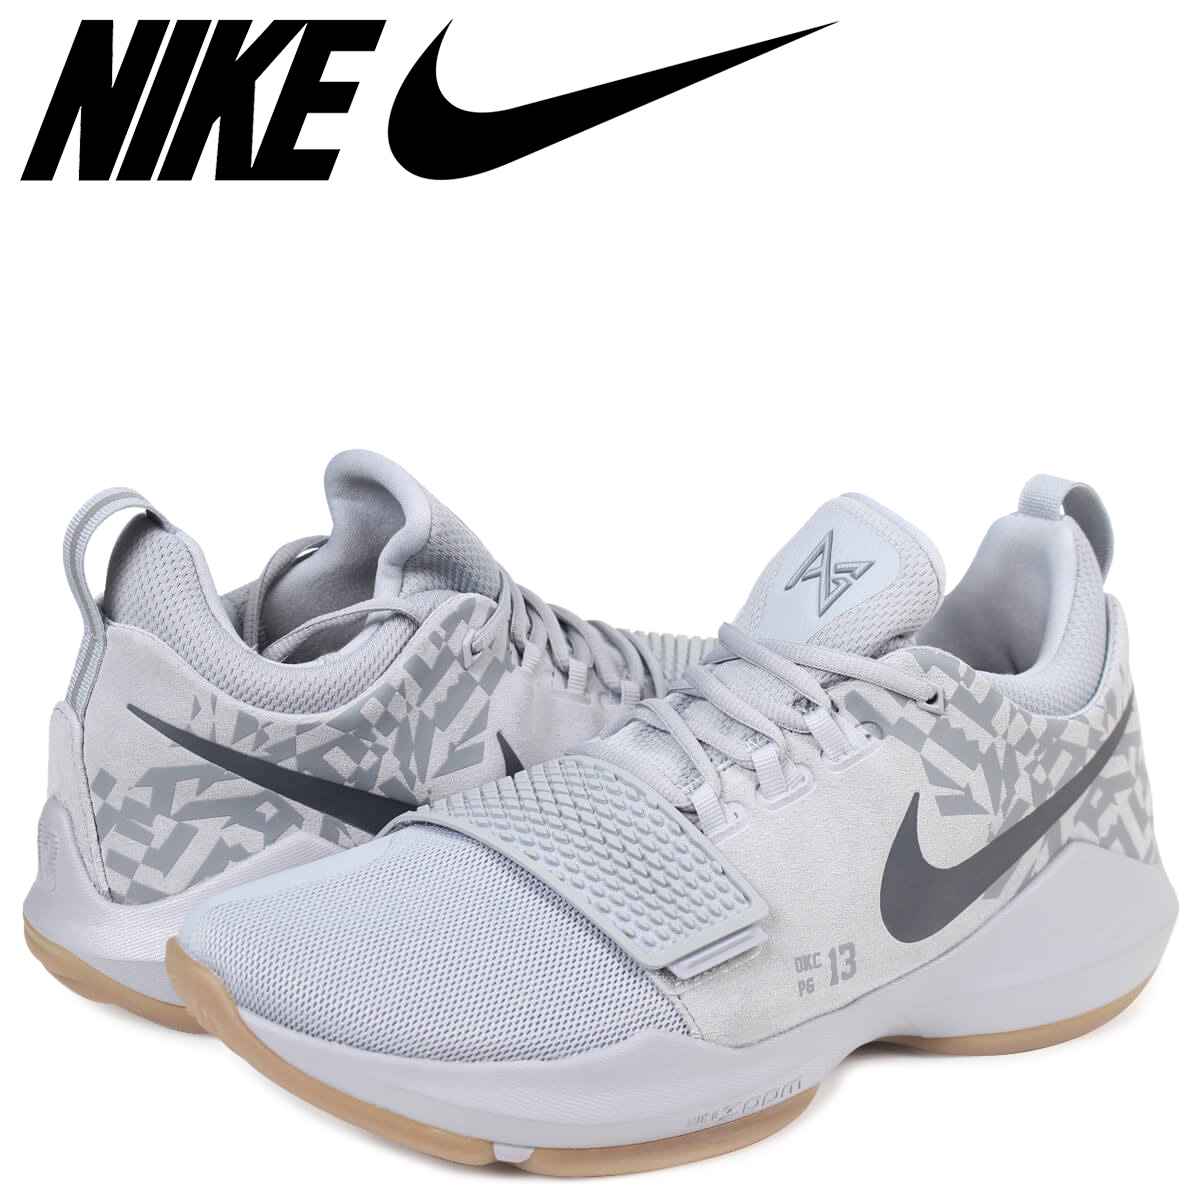 san francisco a05c3 c05f7 nike pg 1 price singapore